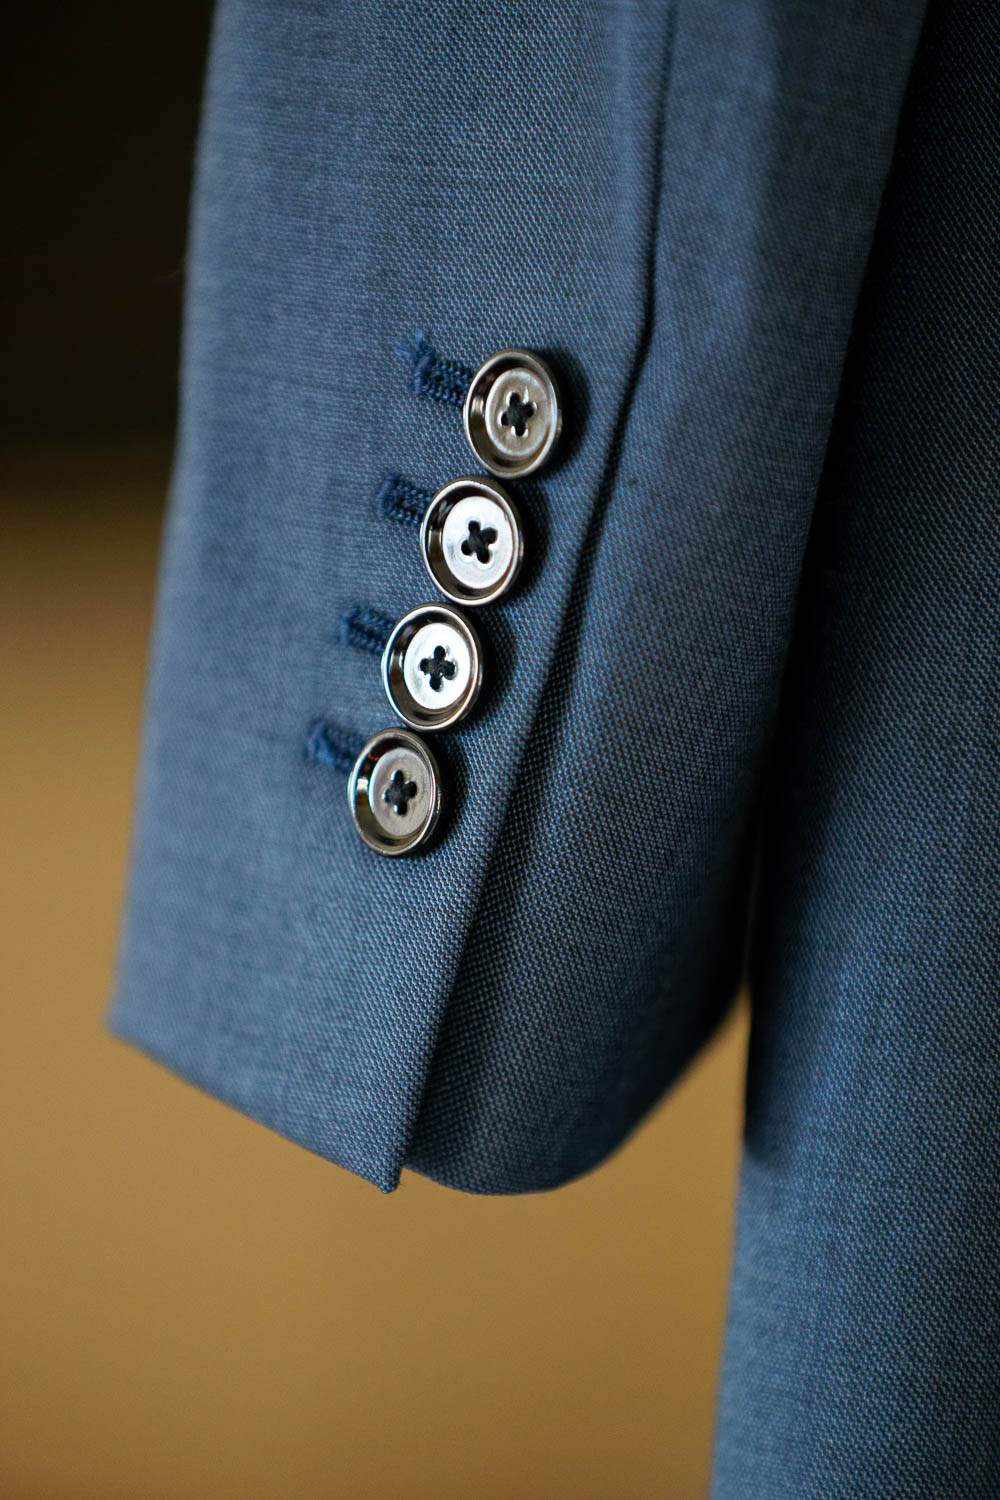 — suite from indochino —